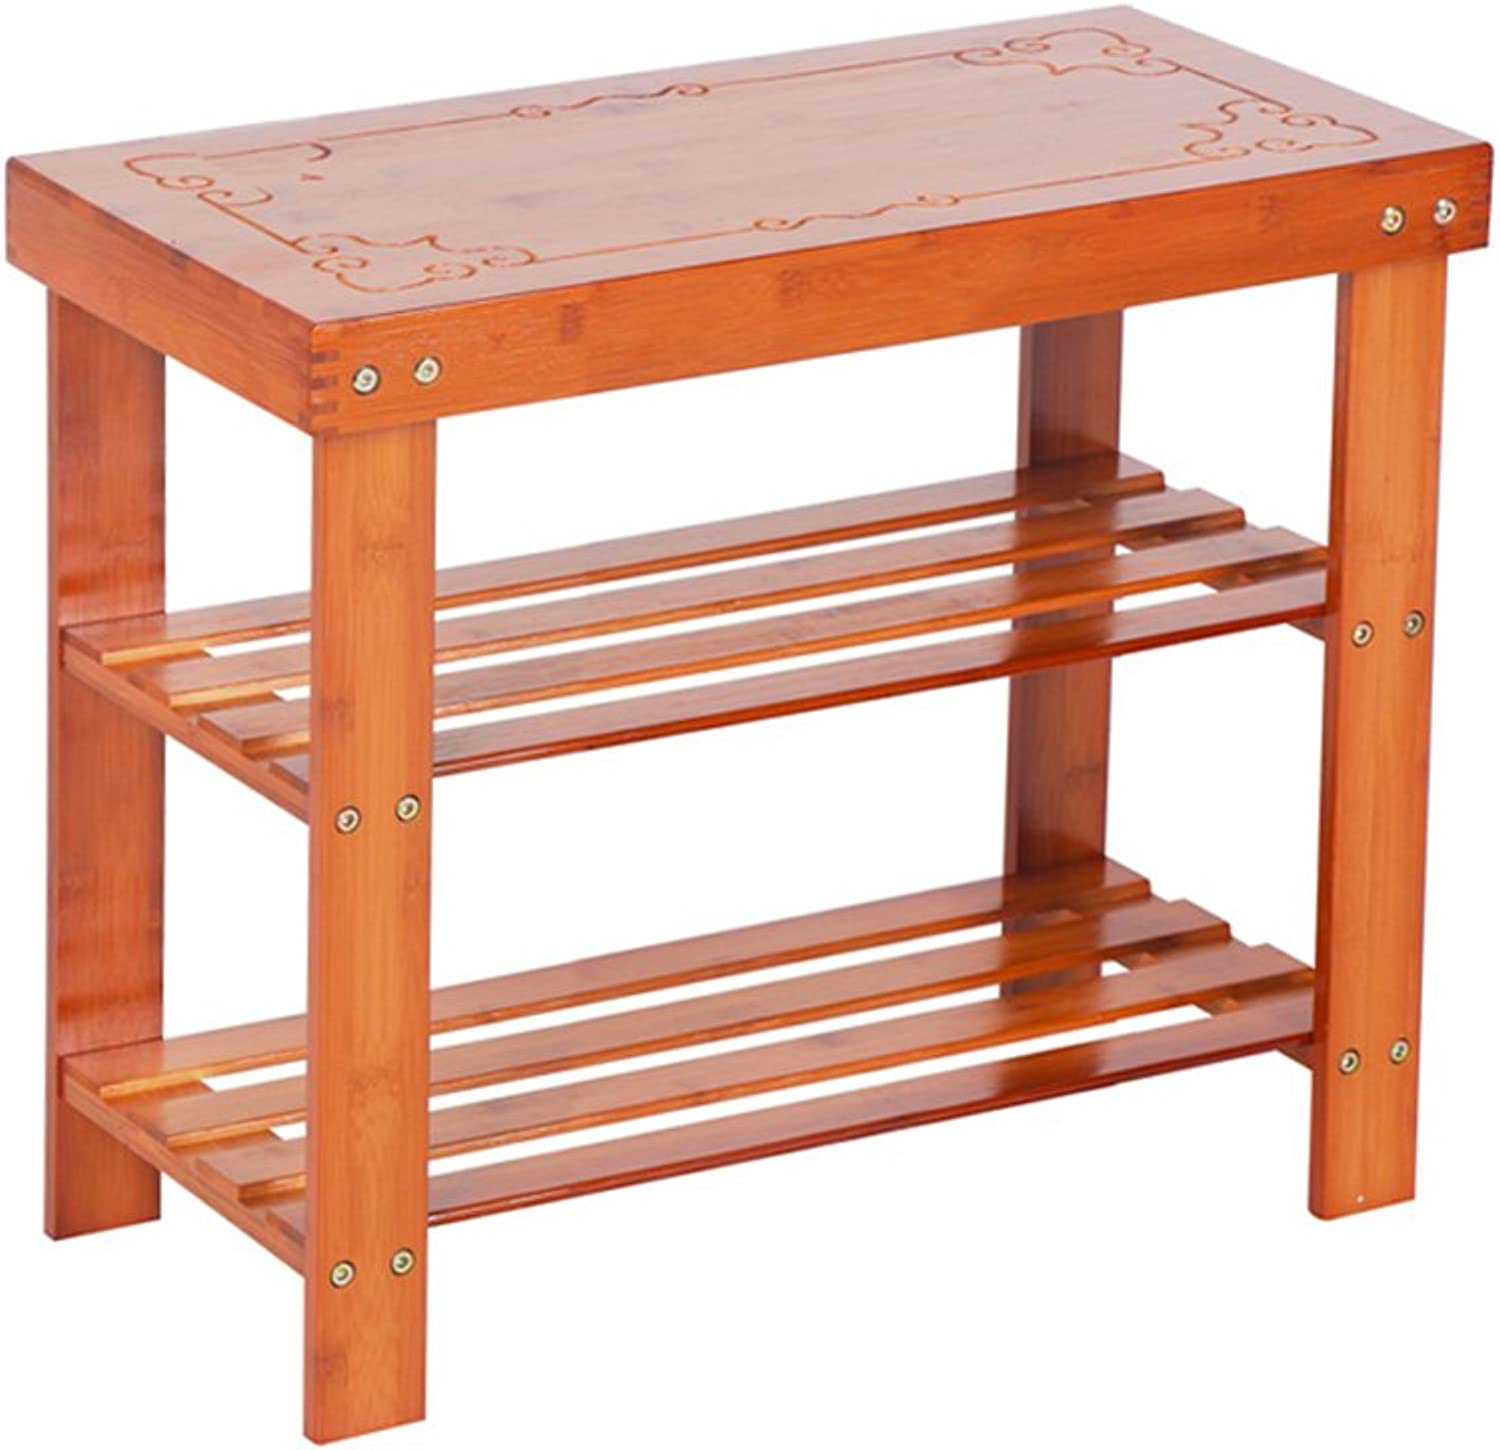 ZHIRONG 3-Tier Bamboo shoes Bench, shoes Rack Storage Organizer, Changing shoes Stool, Ideal For Hallway, Bathroom, Living Room And Corridor, 452850CM  452860CM   452870CM 452880CM 452890CM